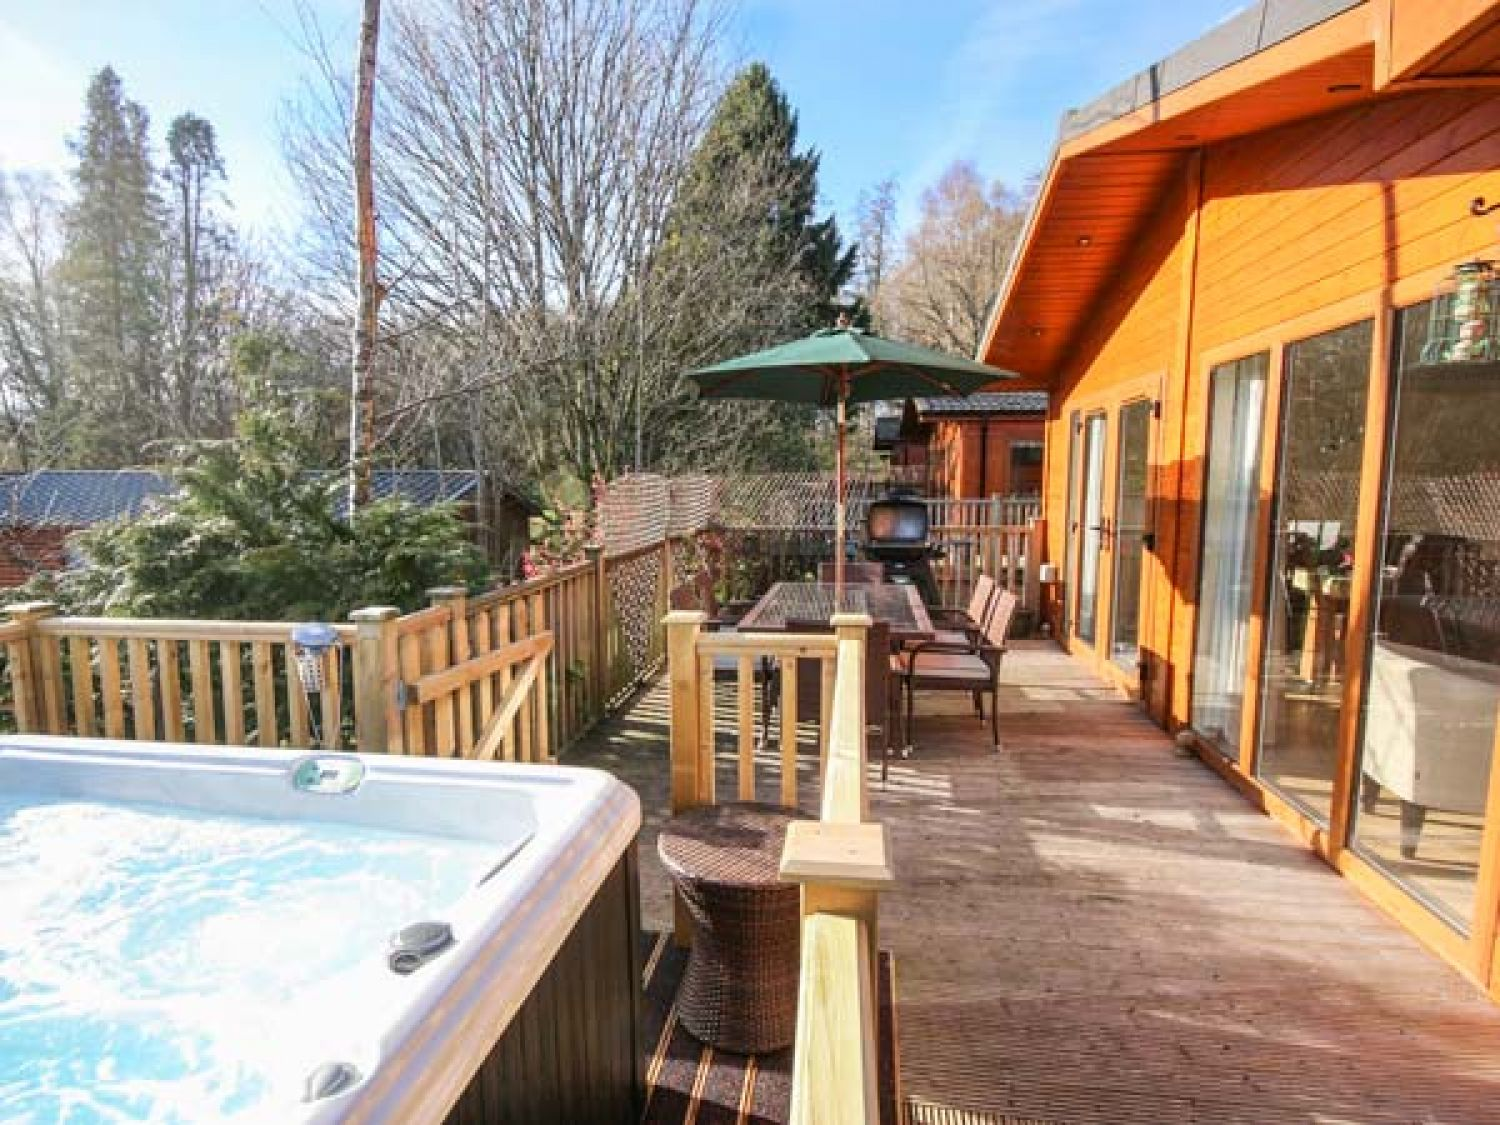 Claife View Lodge - Lake District - 935405 - photo 1